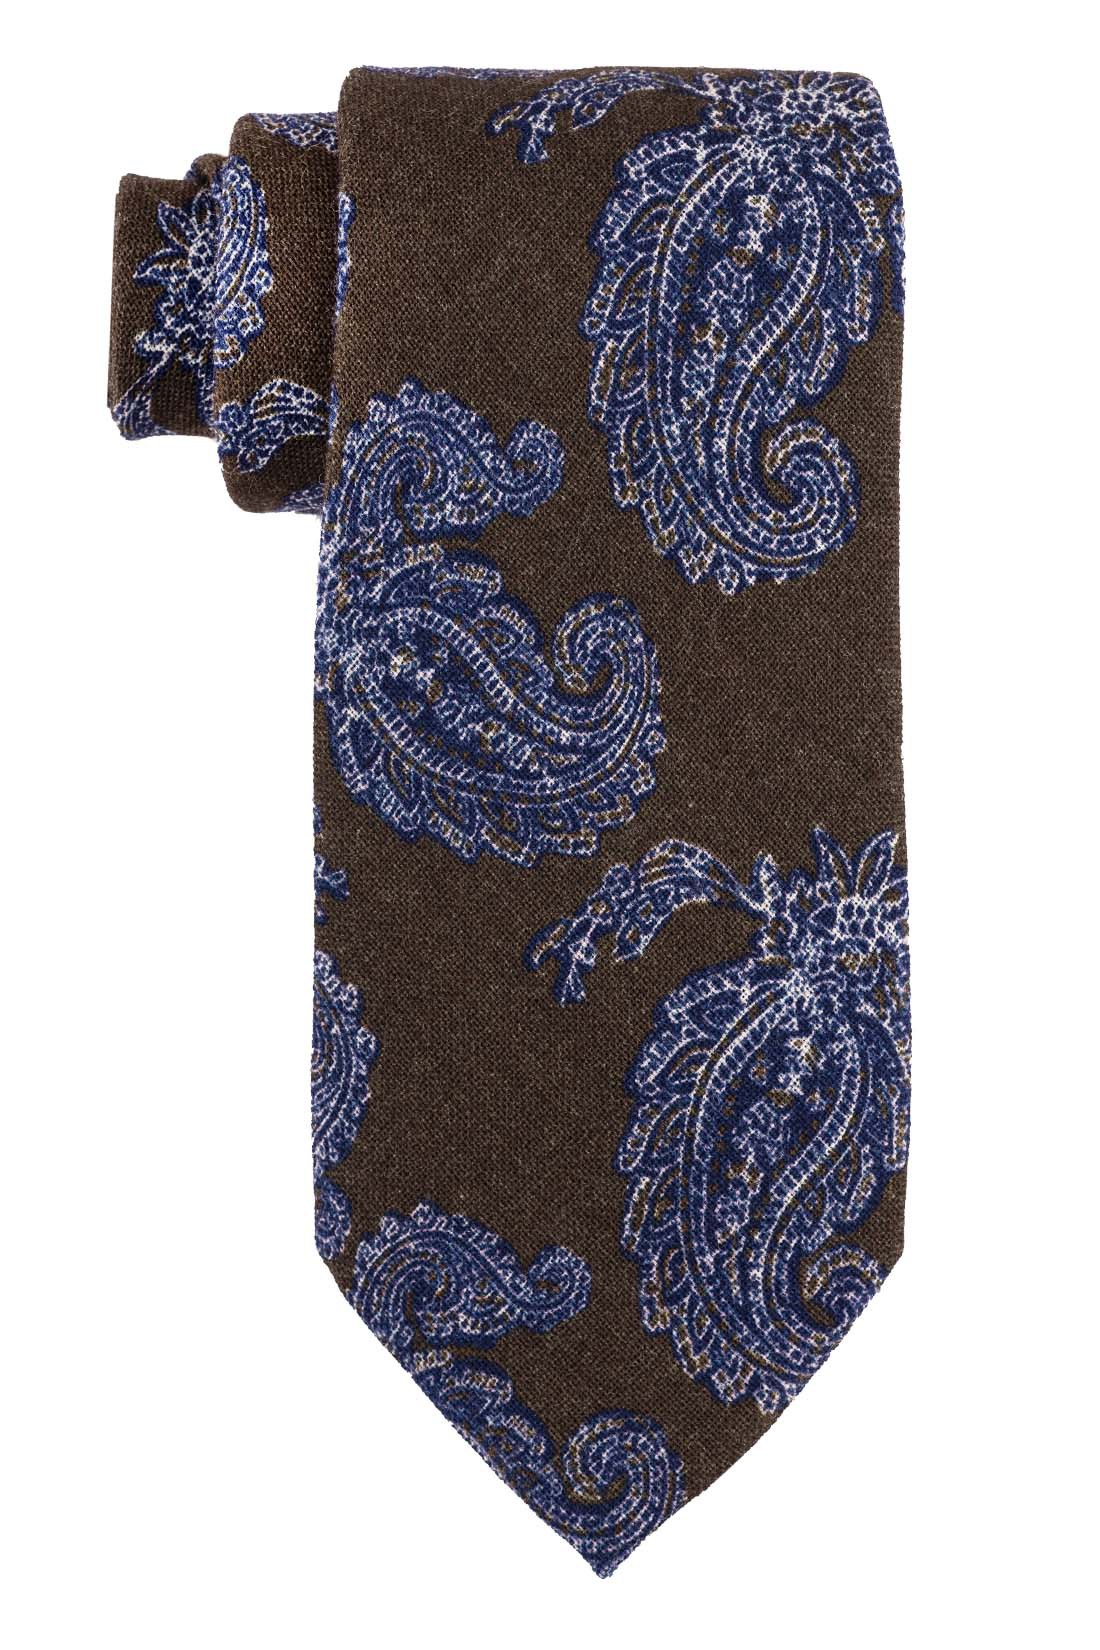 Trade Paisley Brown and Blue 100% Silk Necktie